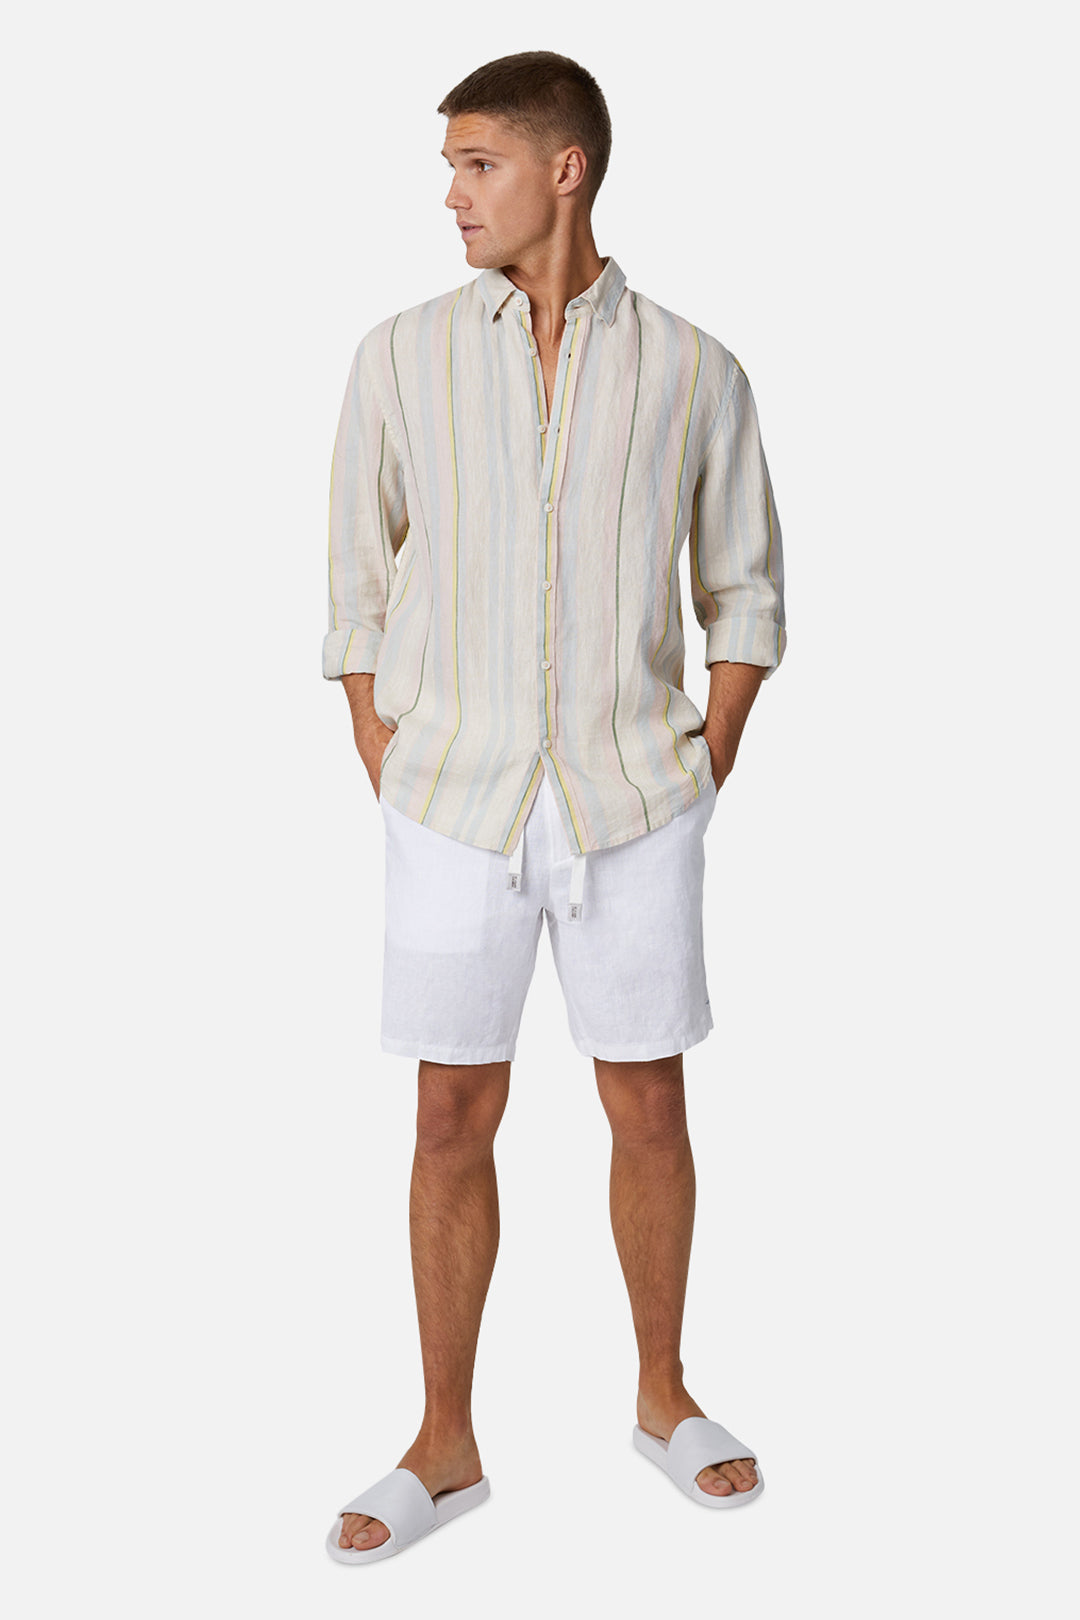 The Baller Linen Short - White